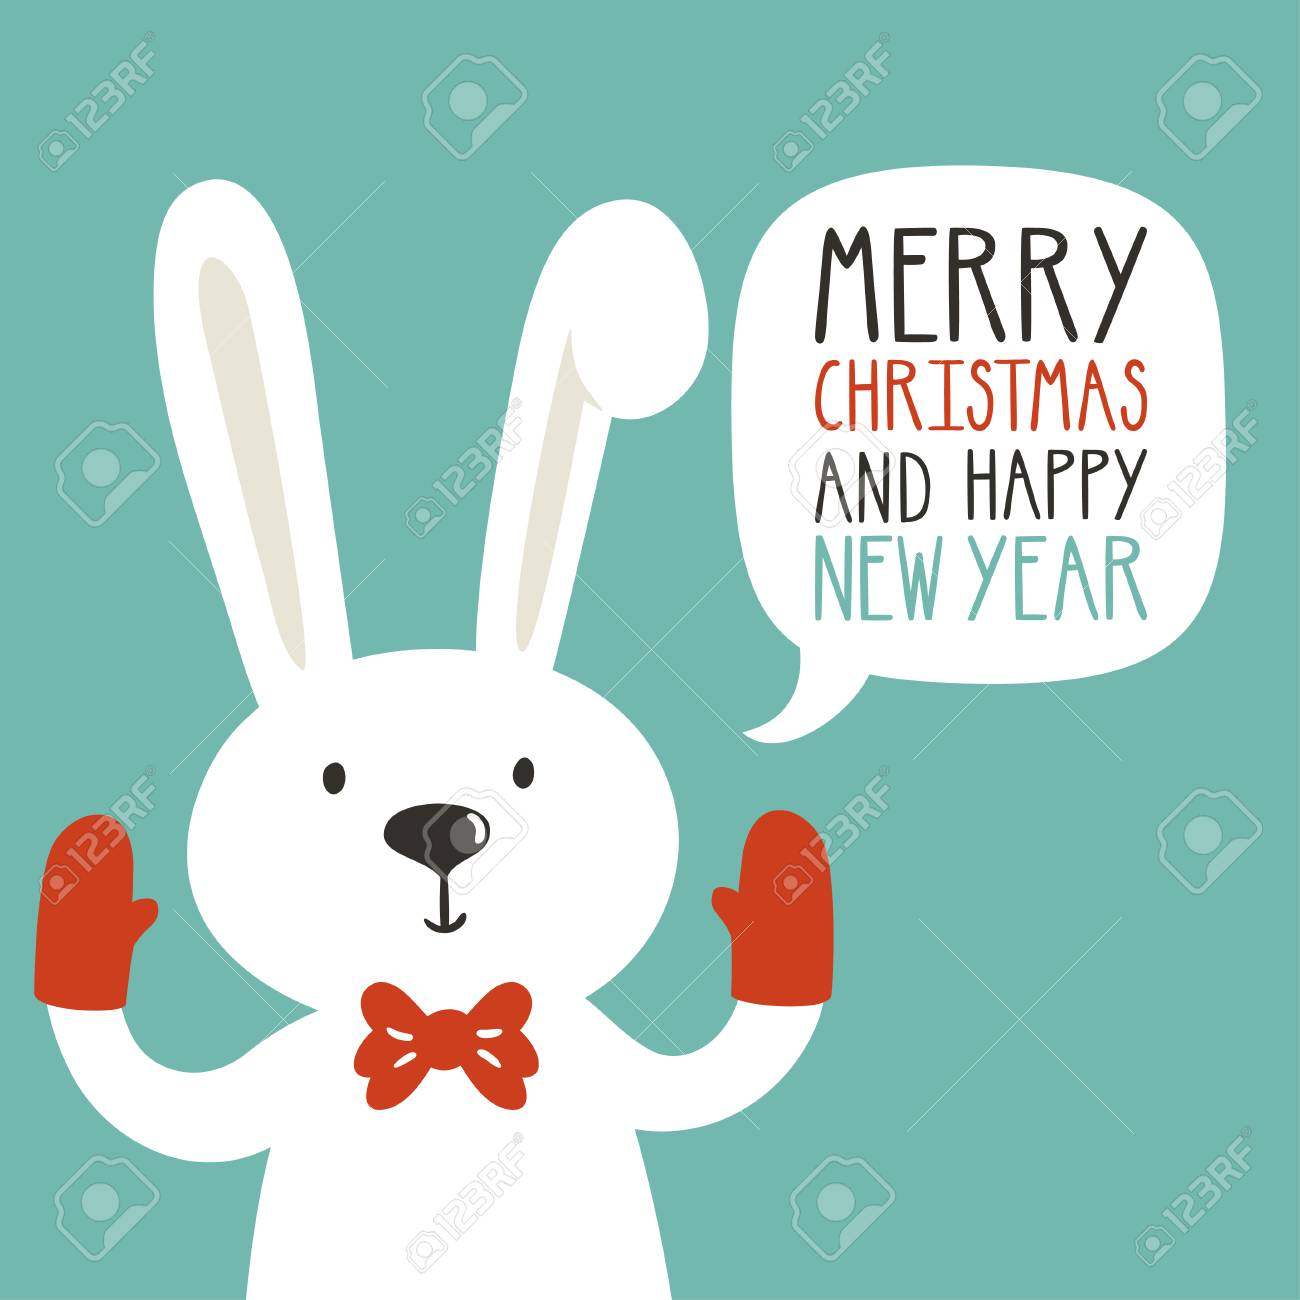 vector vector holiday illustration of a cute rabbit in the mittens saying merry christmas and happy new year